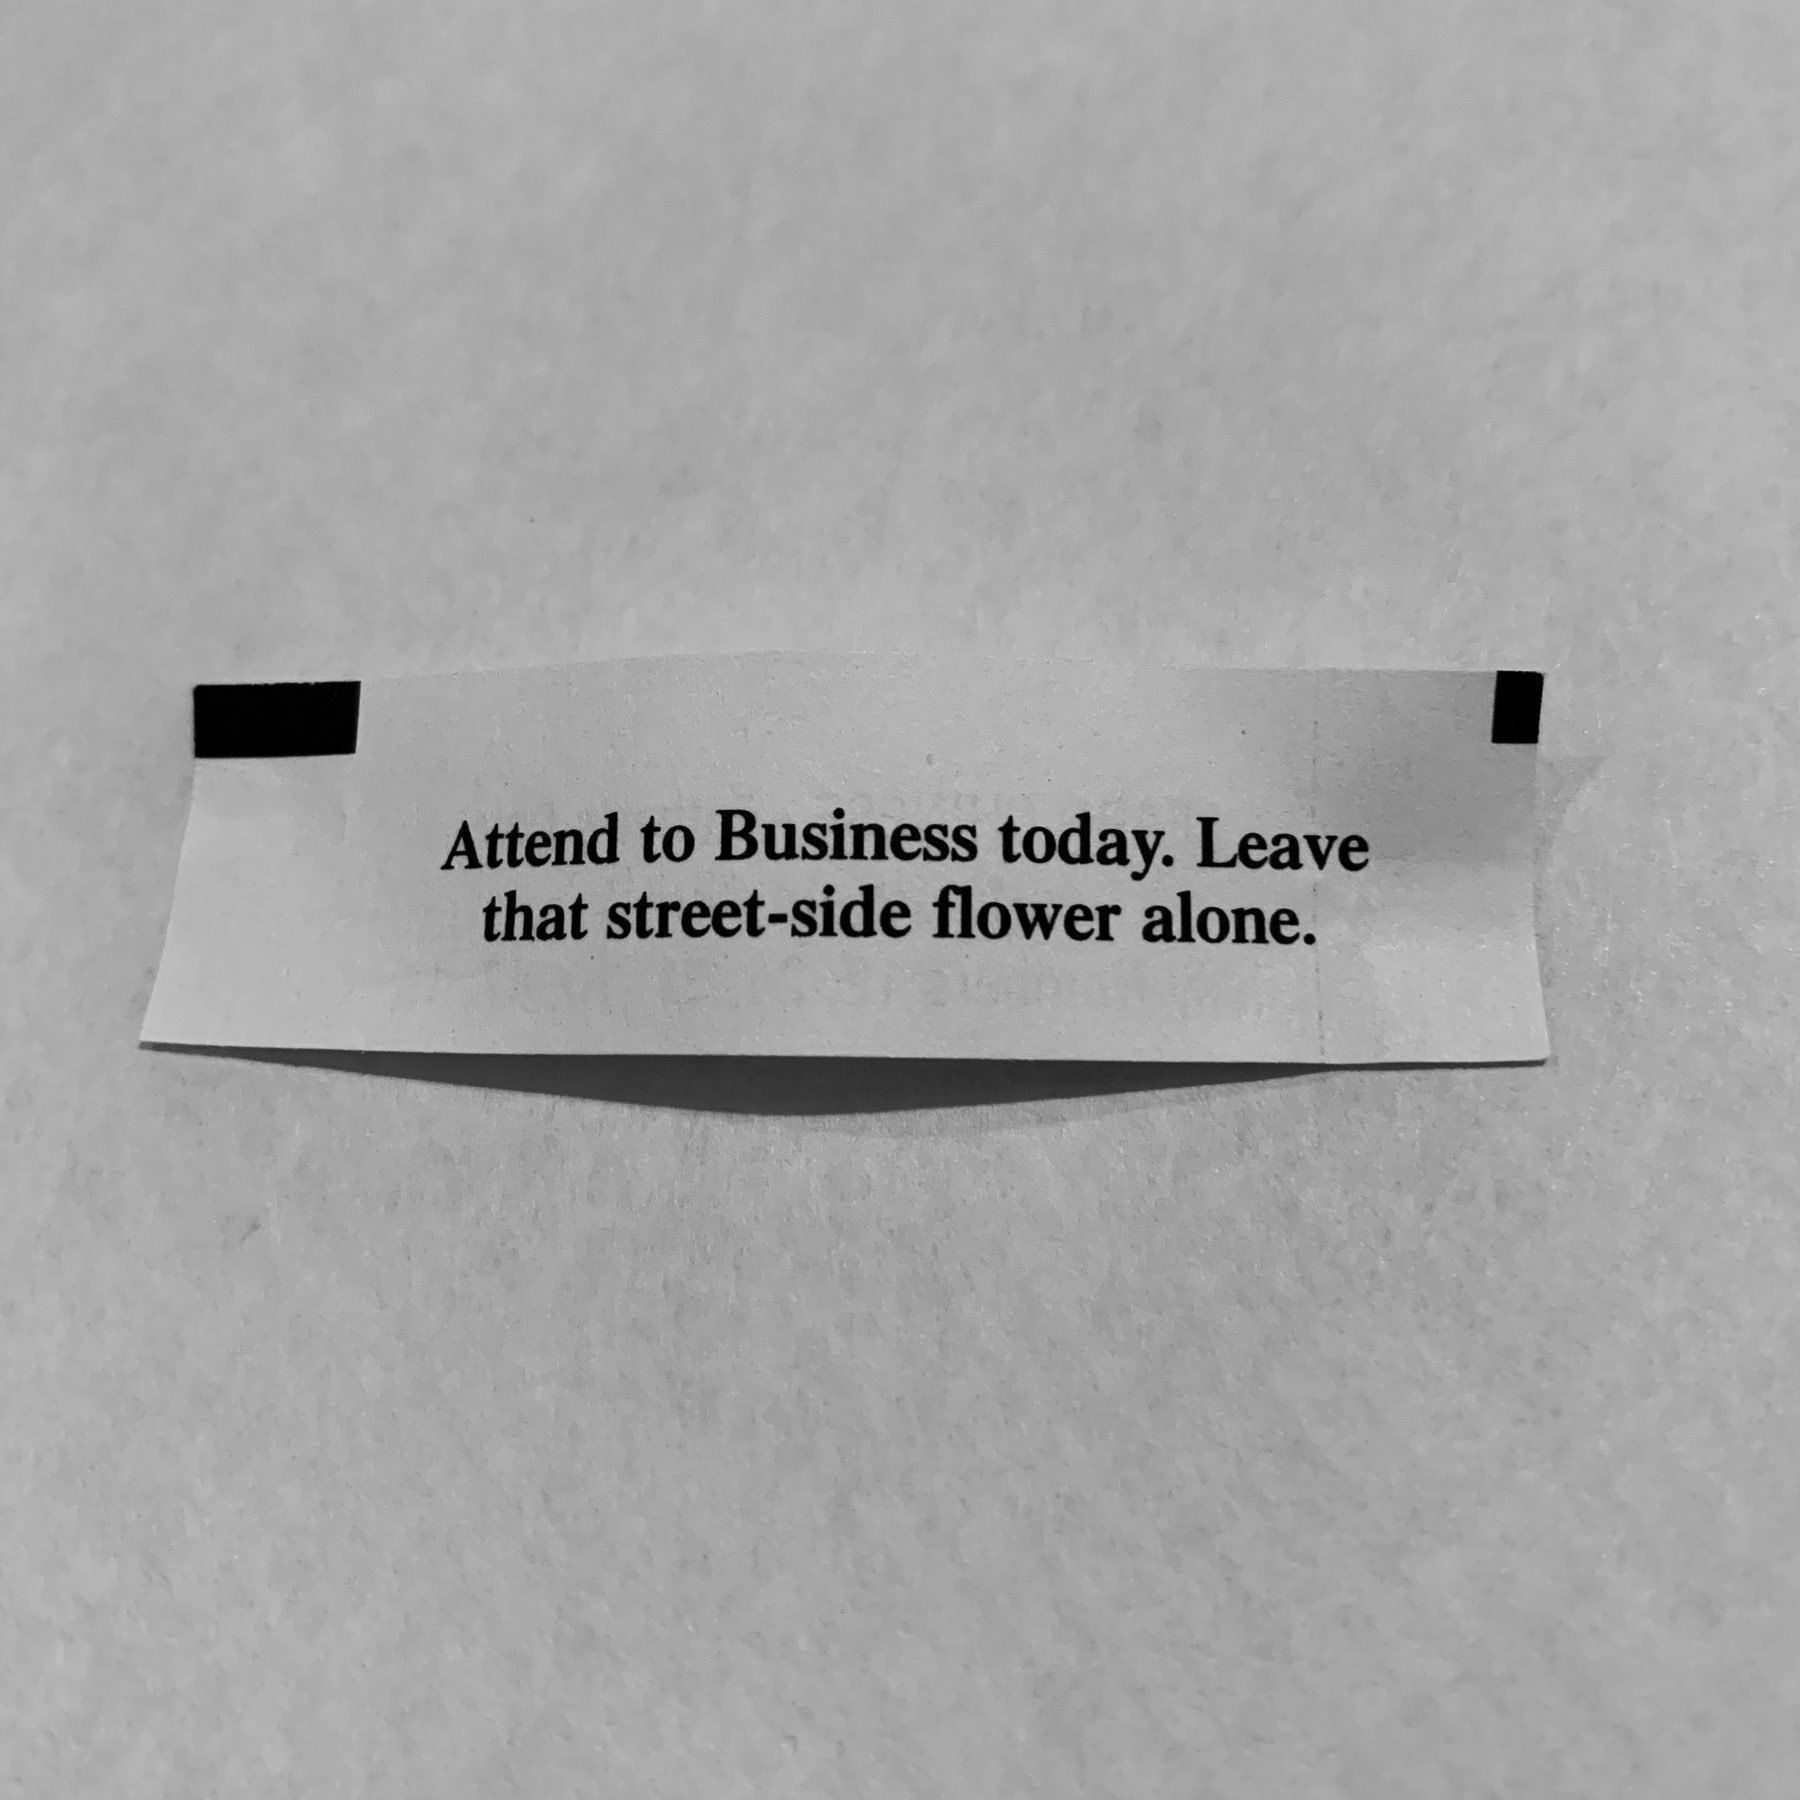 Fortune reading 'Attend to Business today. leave that street-side flower alone.'